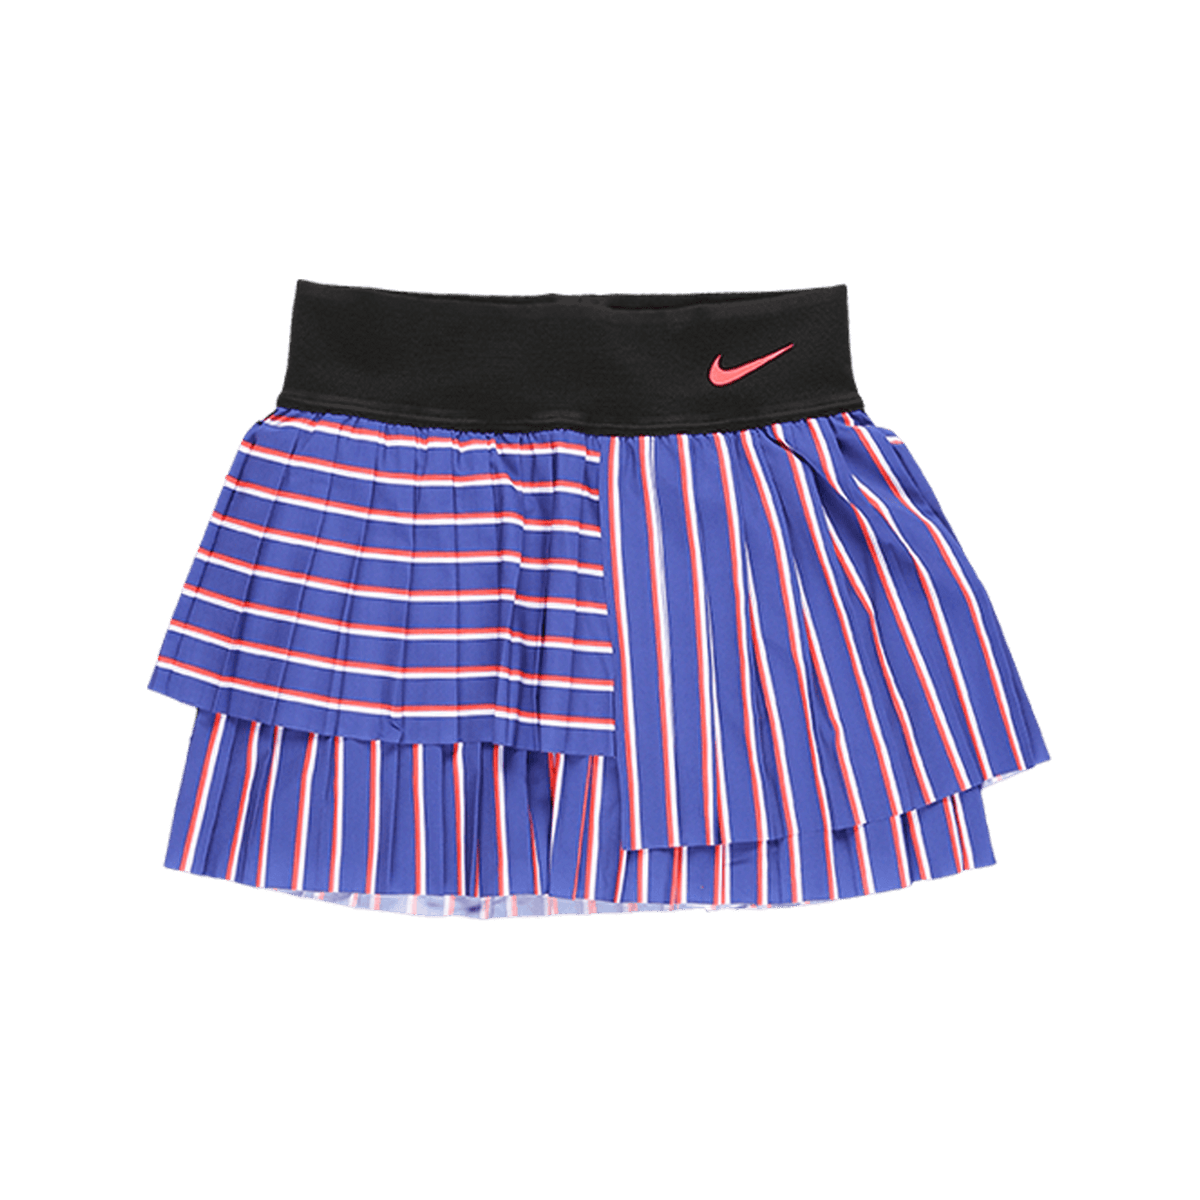 Nike Women's Court Slam Skirt  - XHIBITION